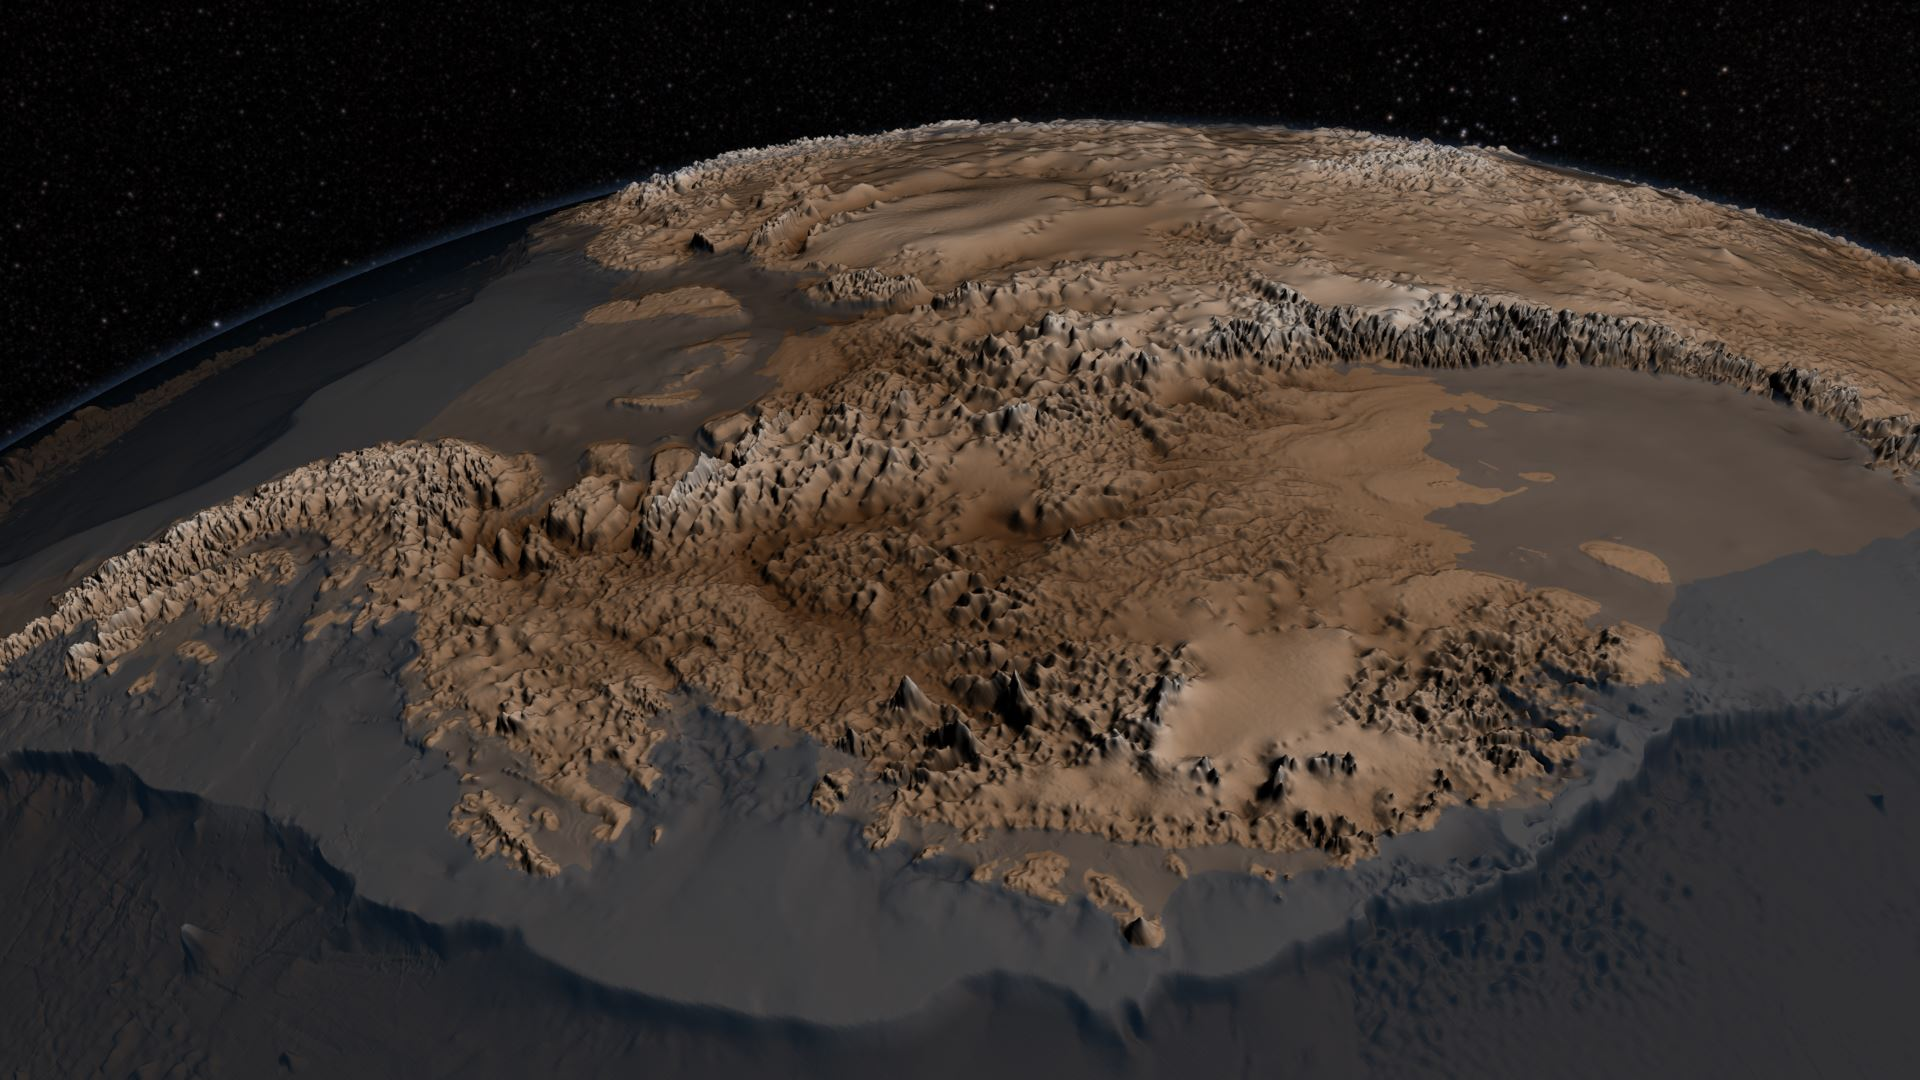 antarctica without ice map Nasa S Icebridge Mission Contributes To New Map Of Antarctica Nasa antarctica without ice map